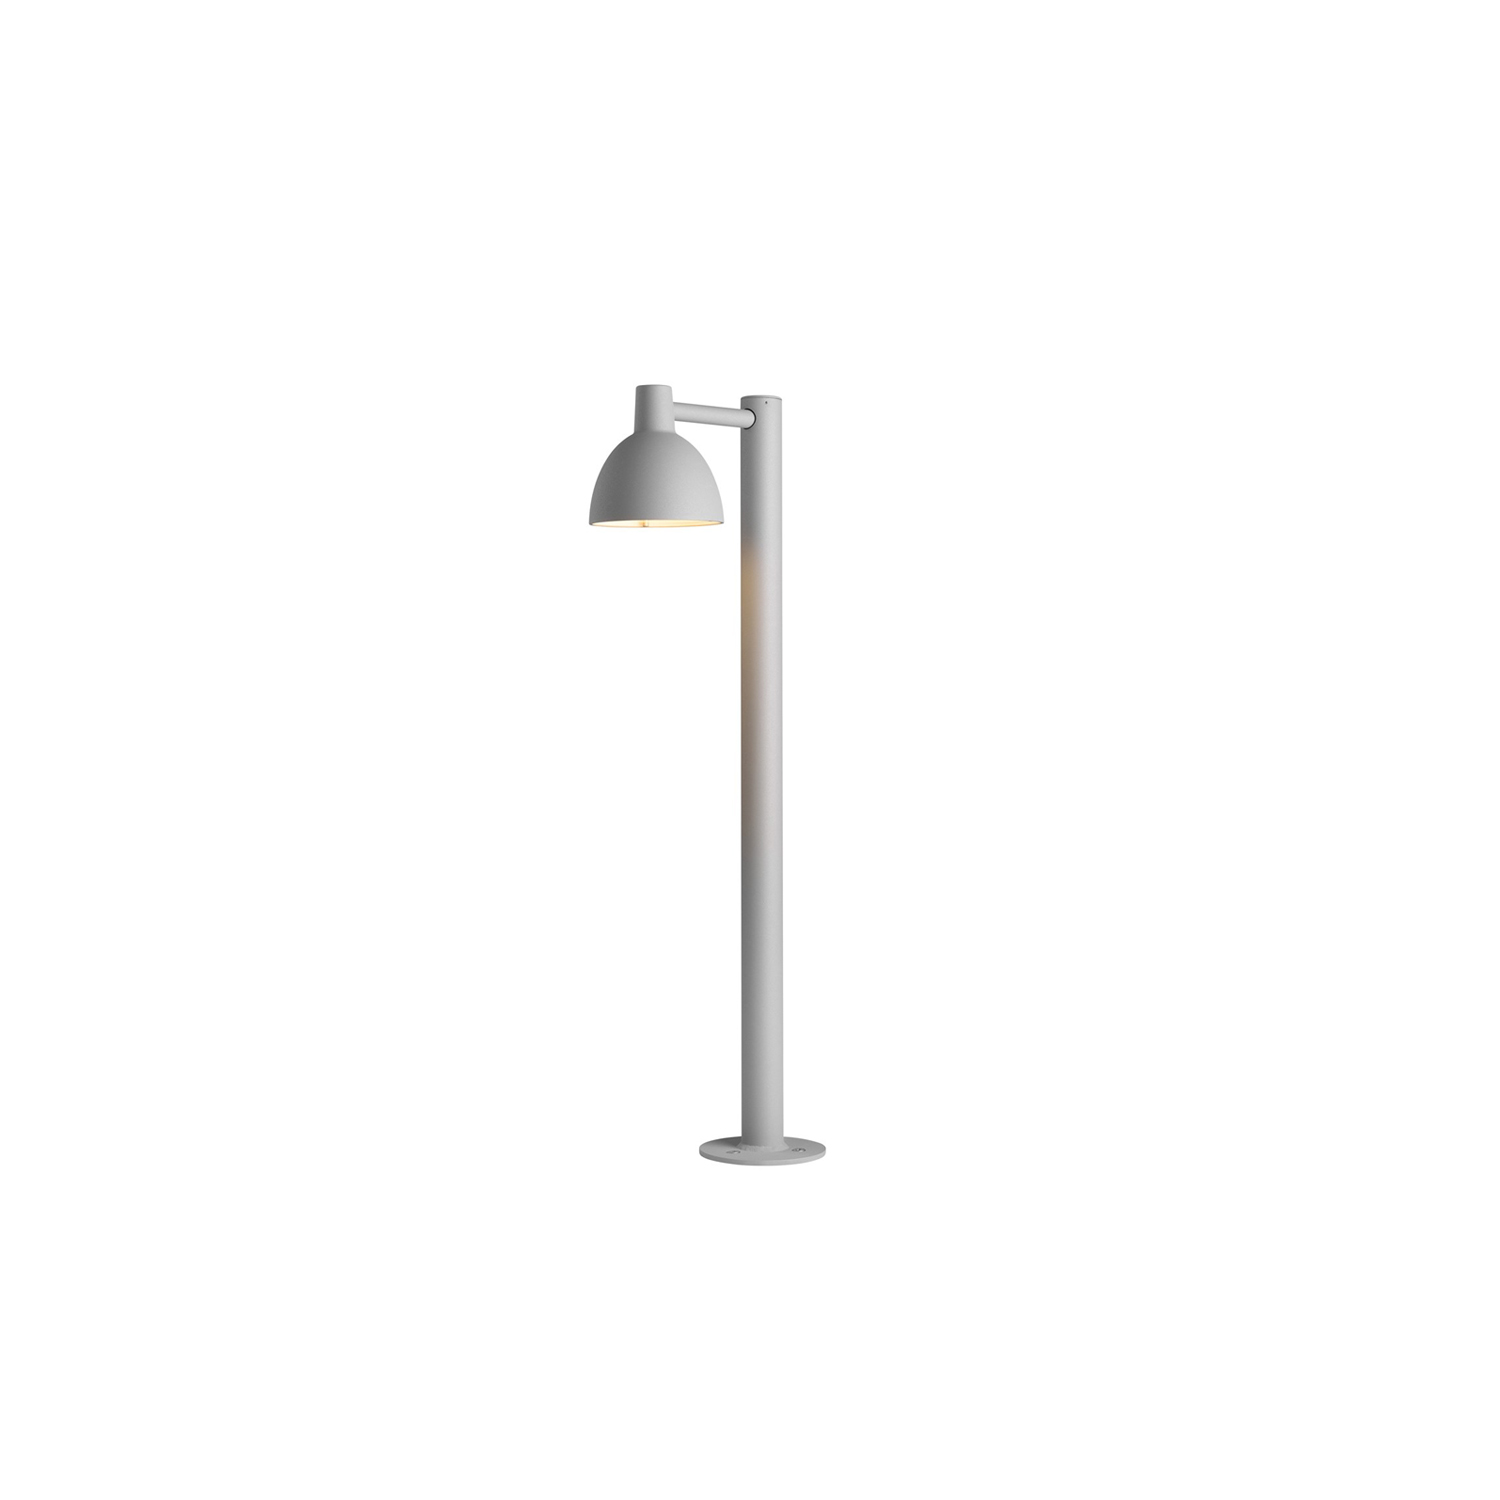 Toldbod 155 Bollard Light - The light is directed 100% downwards and the shade has a matt white painted interior emitting a soft, diffused, comfortable light.   | Matter of Stuff